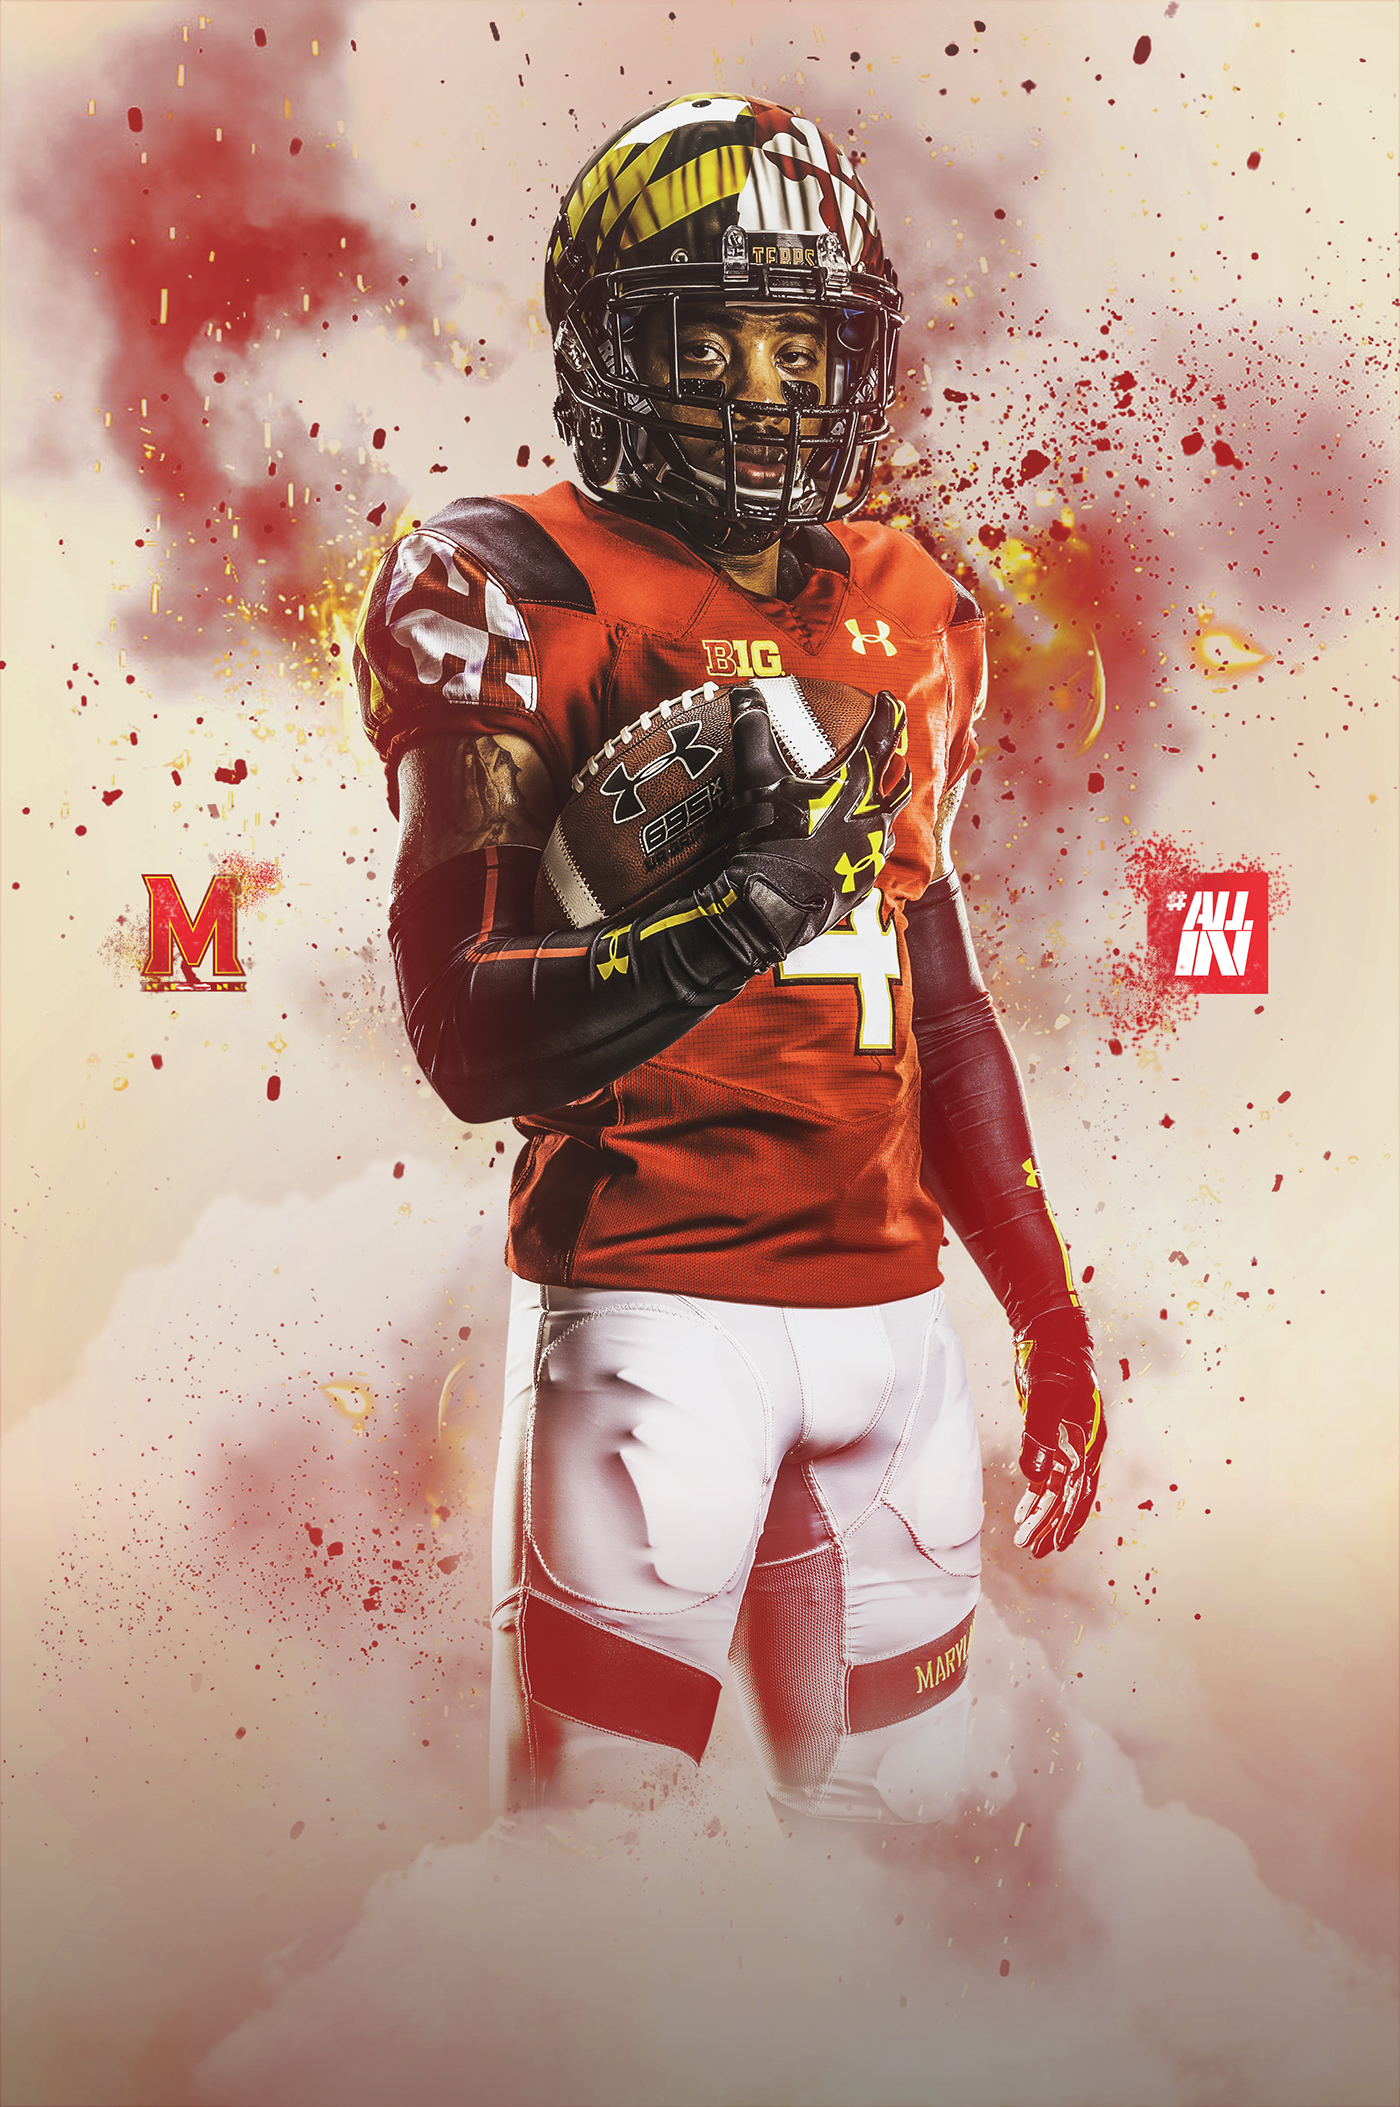 Posters Behance on Football Maryland